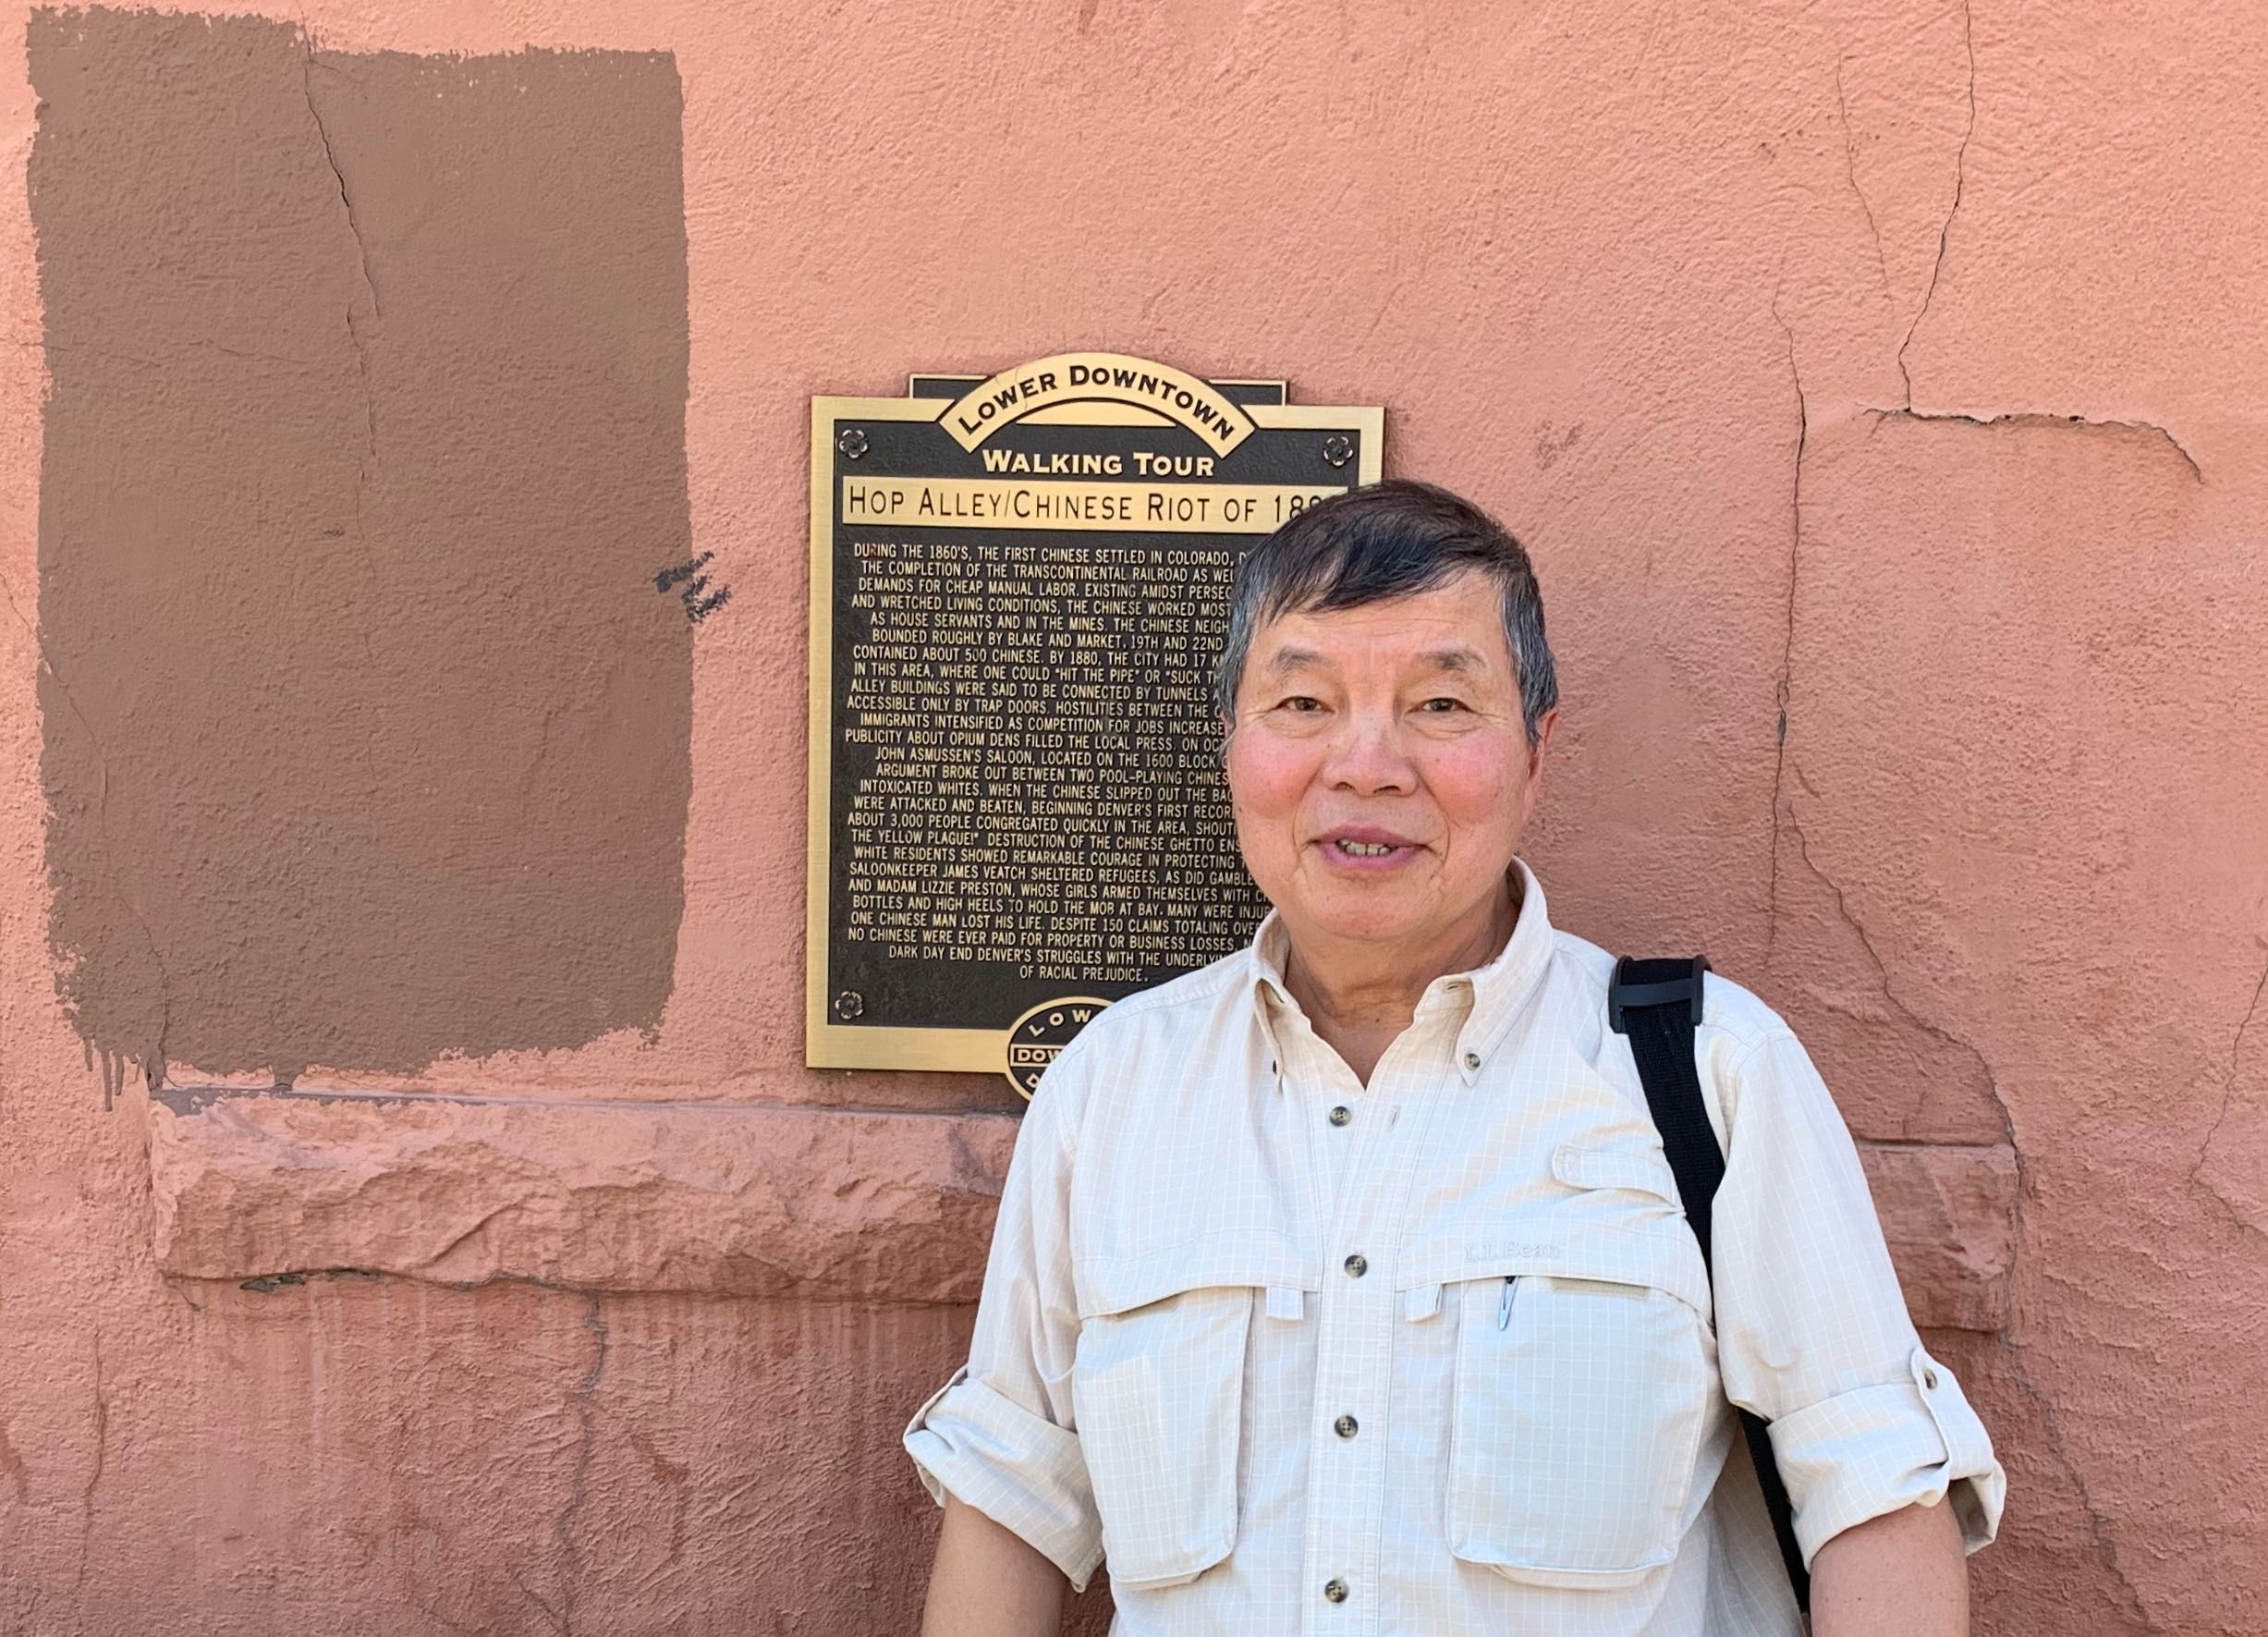 William Wei began his year as Colorado's state historian on August 1, 2019, which is also the state's birthday.